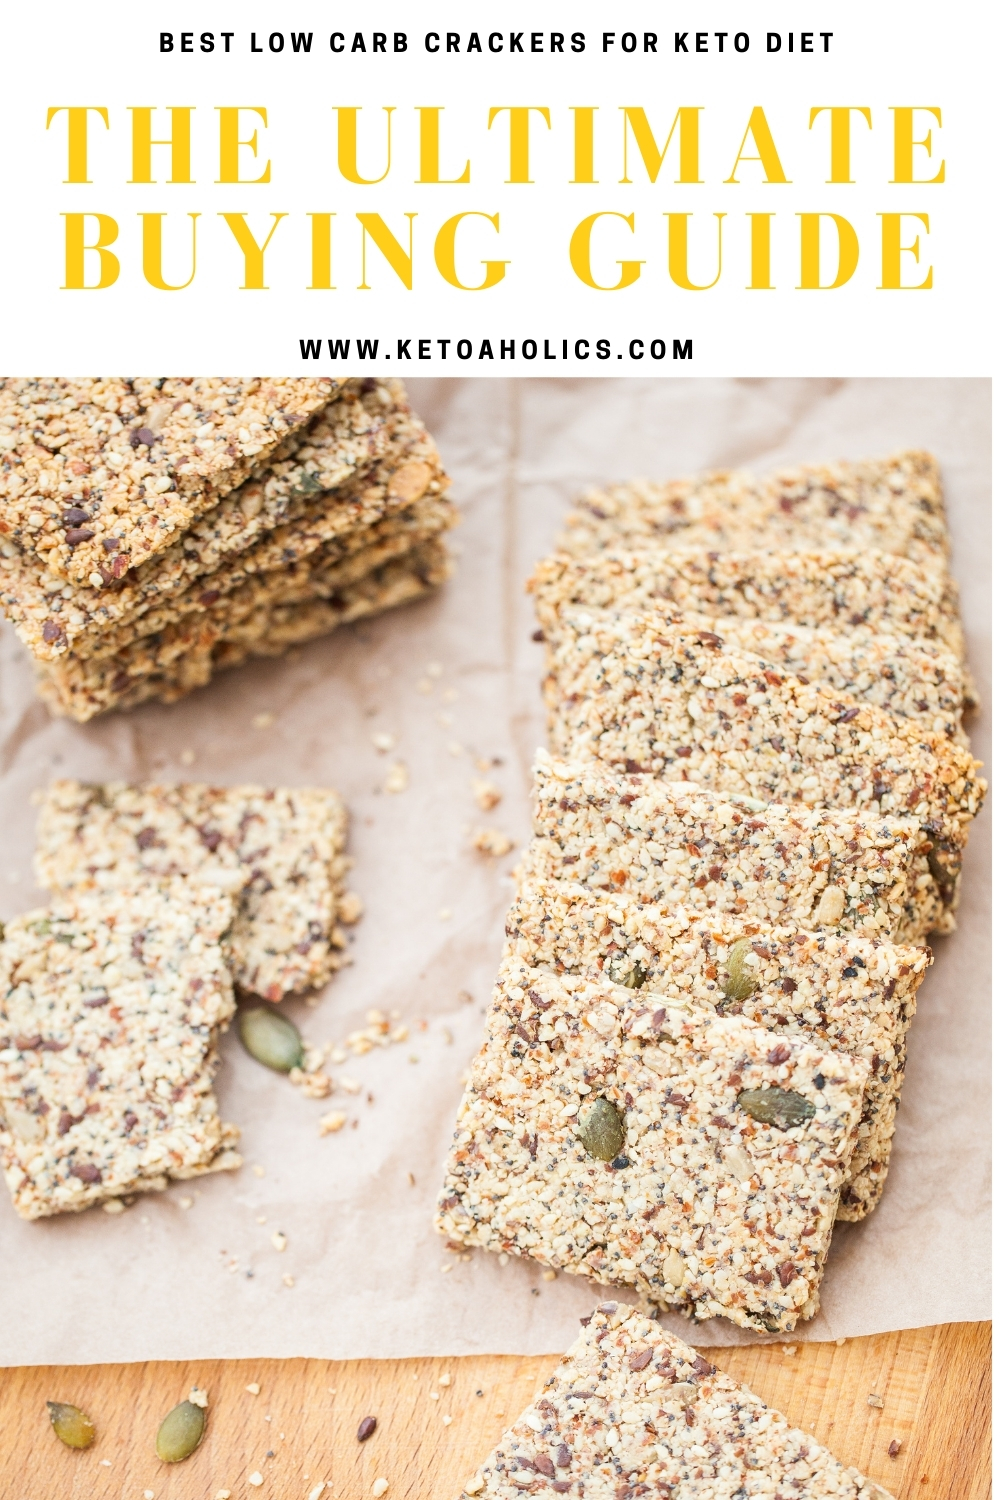 image of Best Low Carb Crackers for Keto Diet The Ultimate Buying Guide